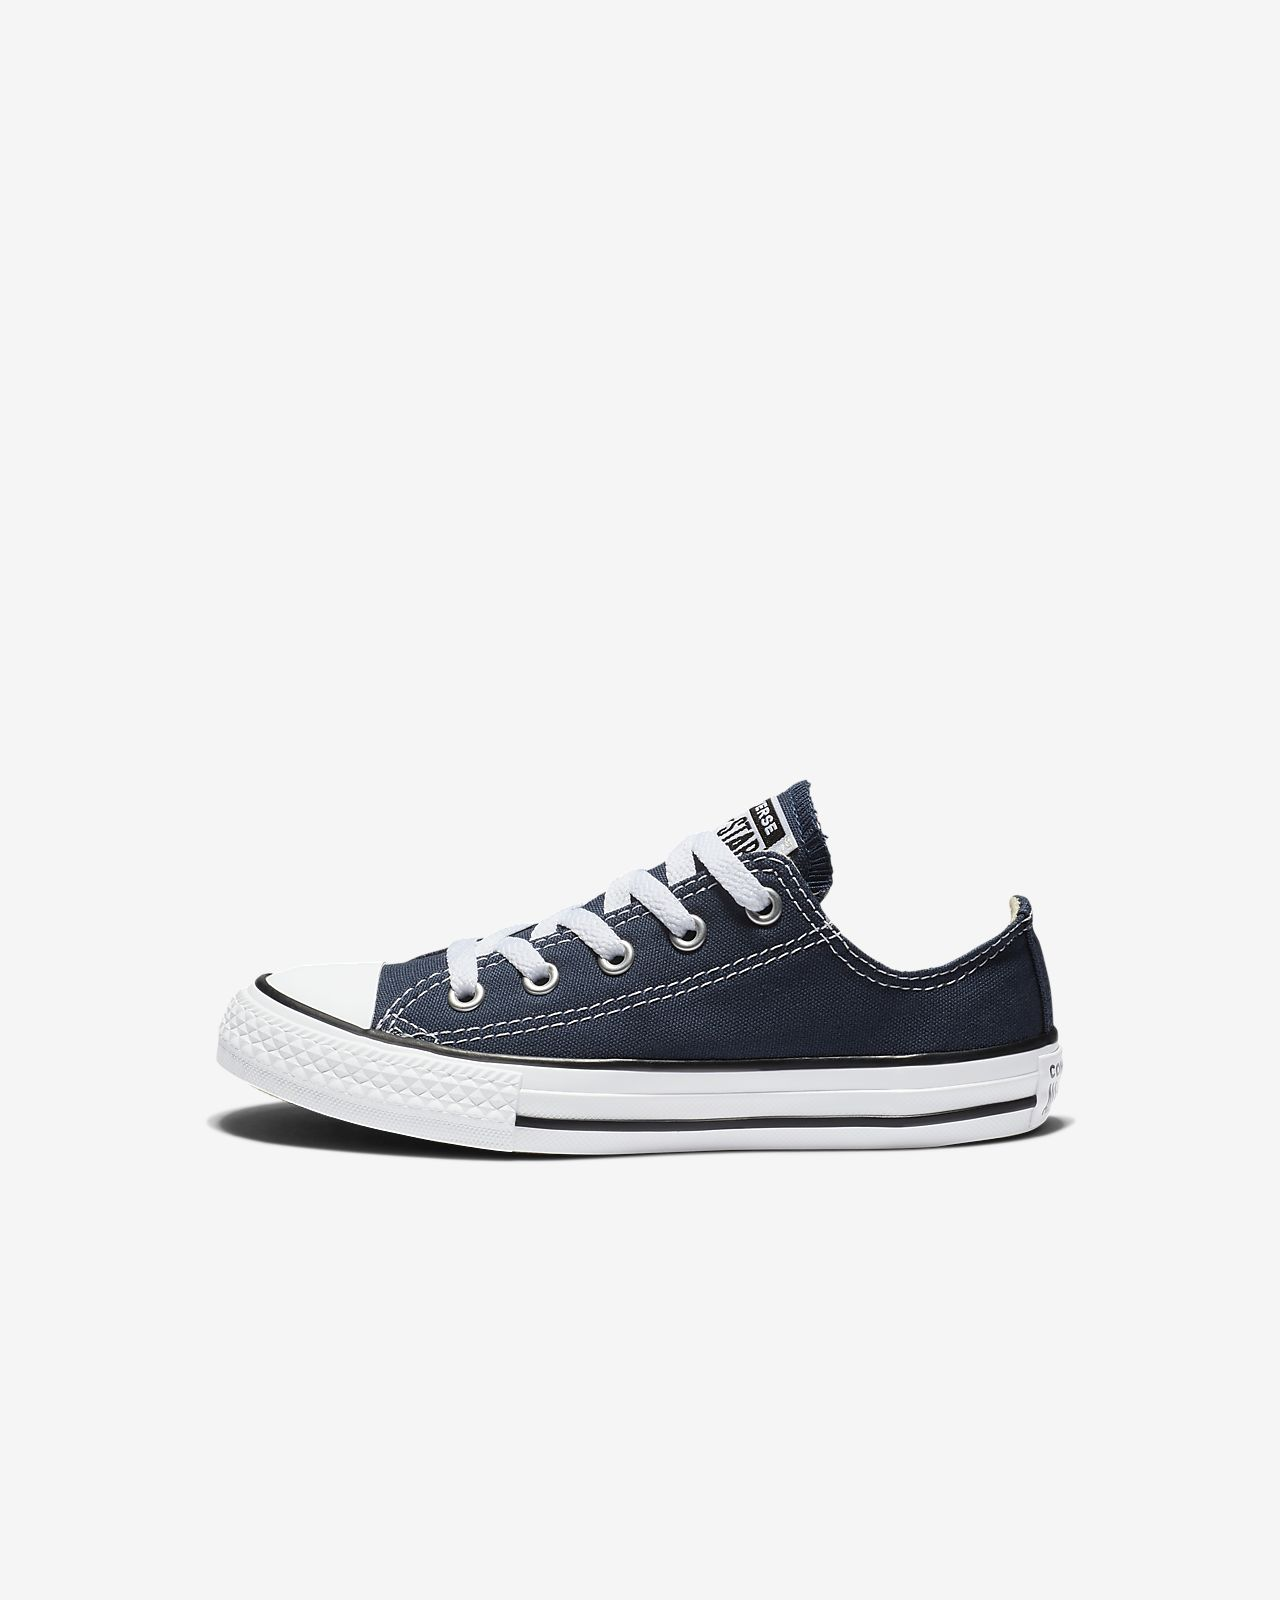 87de20073ea7 Converse Chuck Taylor All Star Low Top (10.5c-3y) Little Kids  Shoe ...